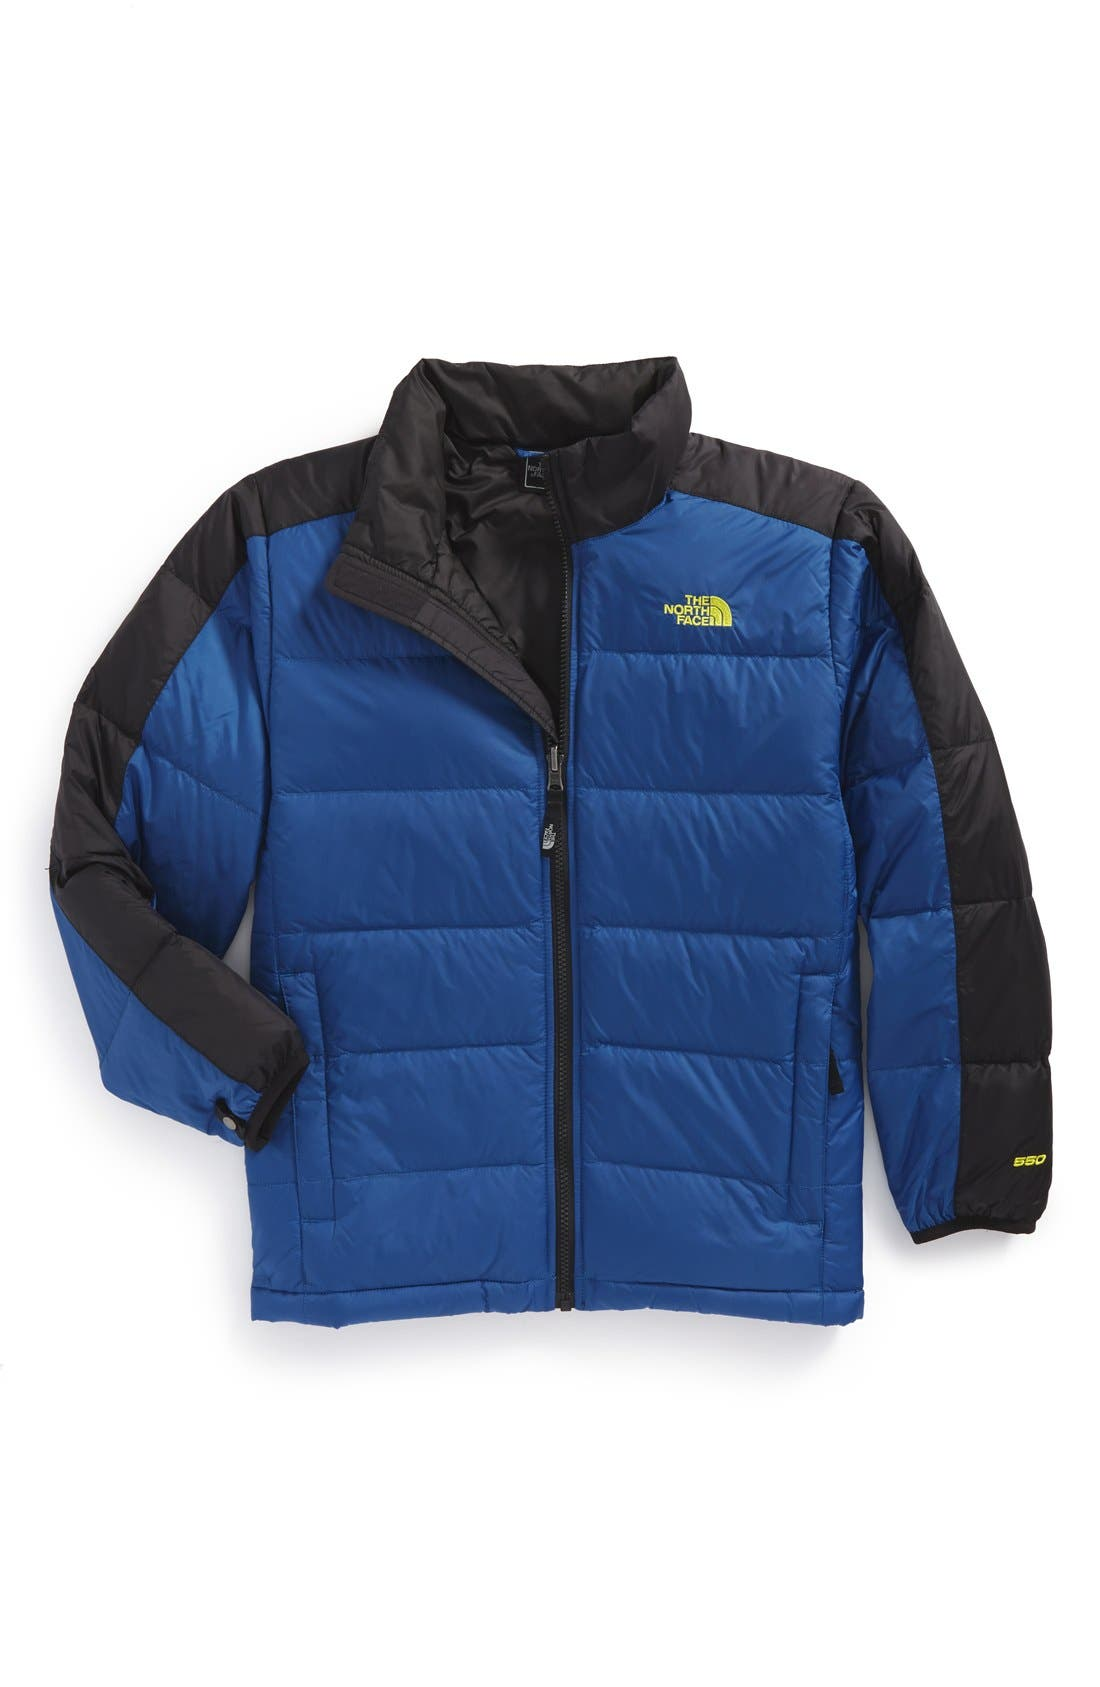 Alternate Image 1 Selected - The North Face 'Aconcagua' Jacket (Big Boys)